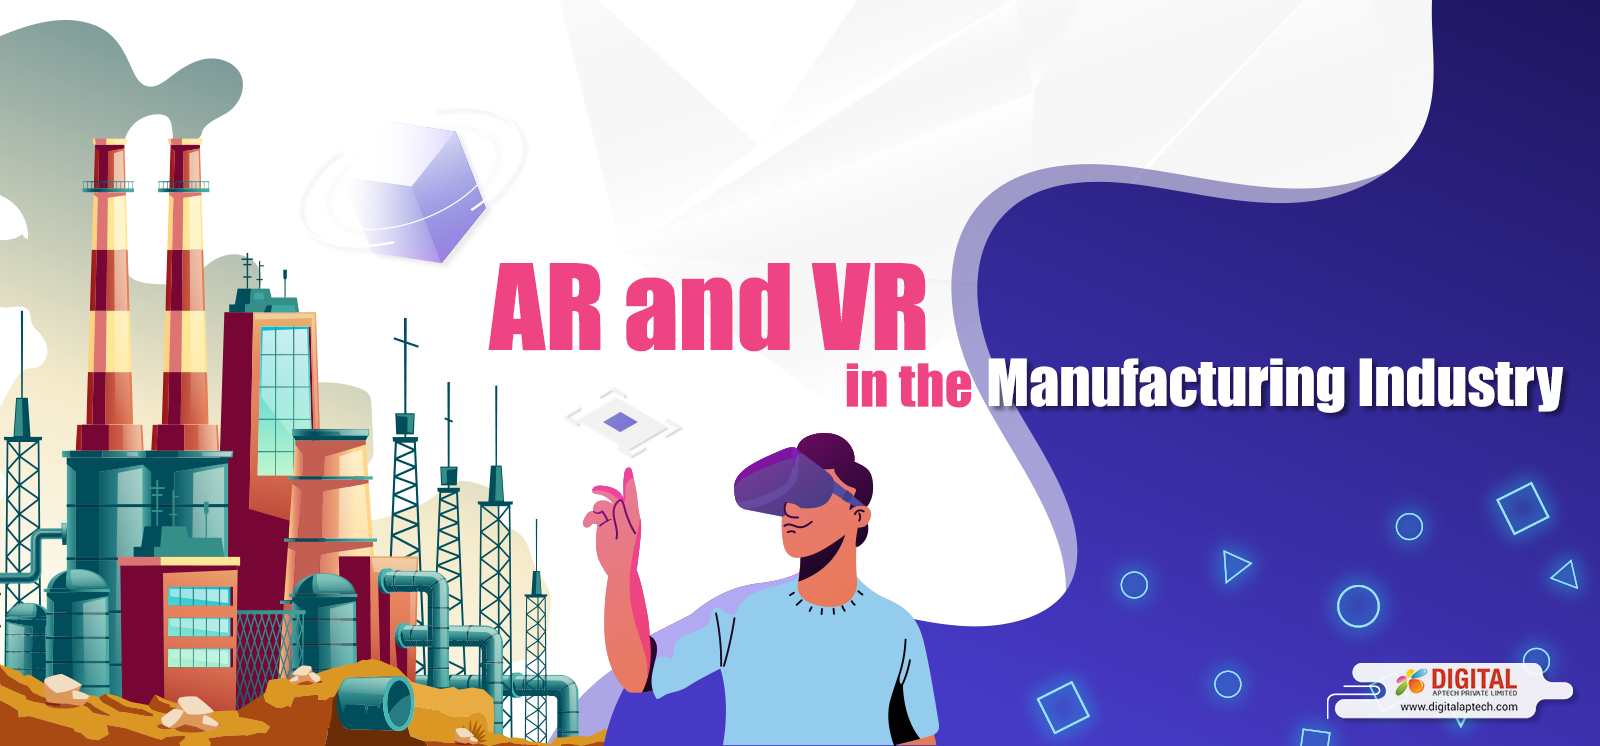 How Can AR and VR Help the Manufacturing Industry?